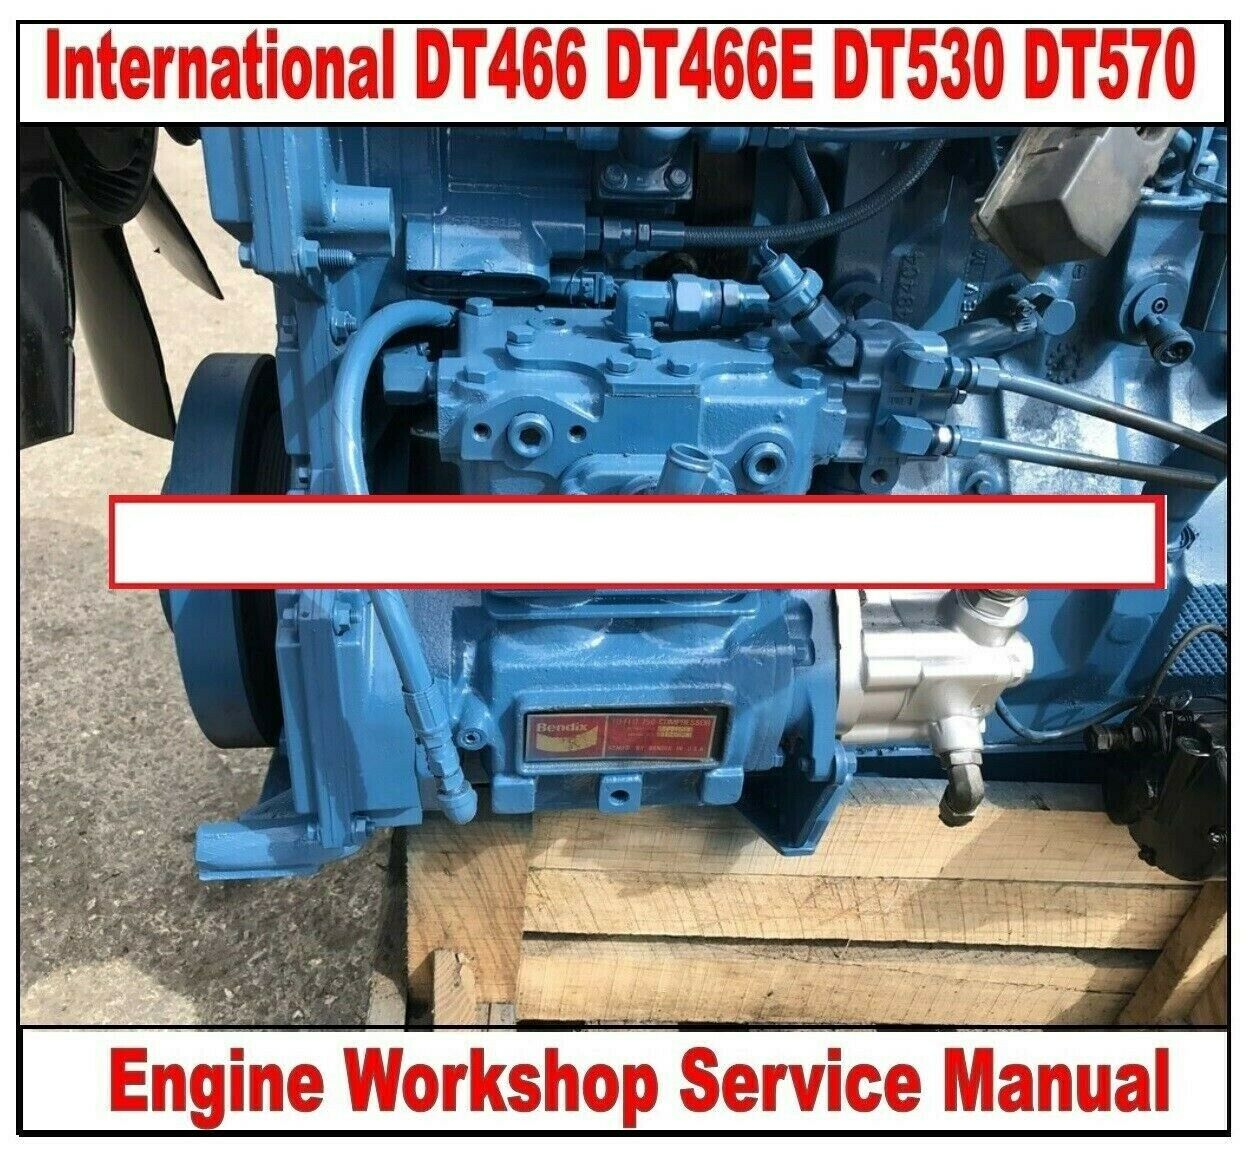 International Dt466 Ecm: 1986 3406b Cat Repair Manual Pdf